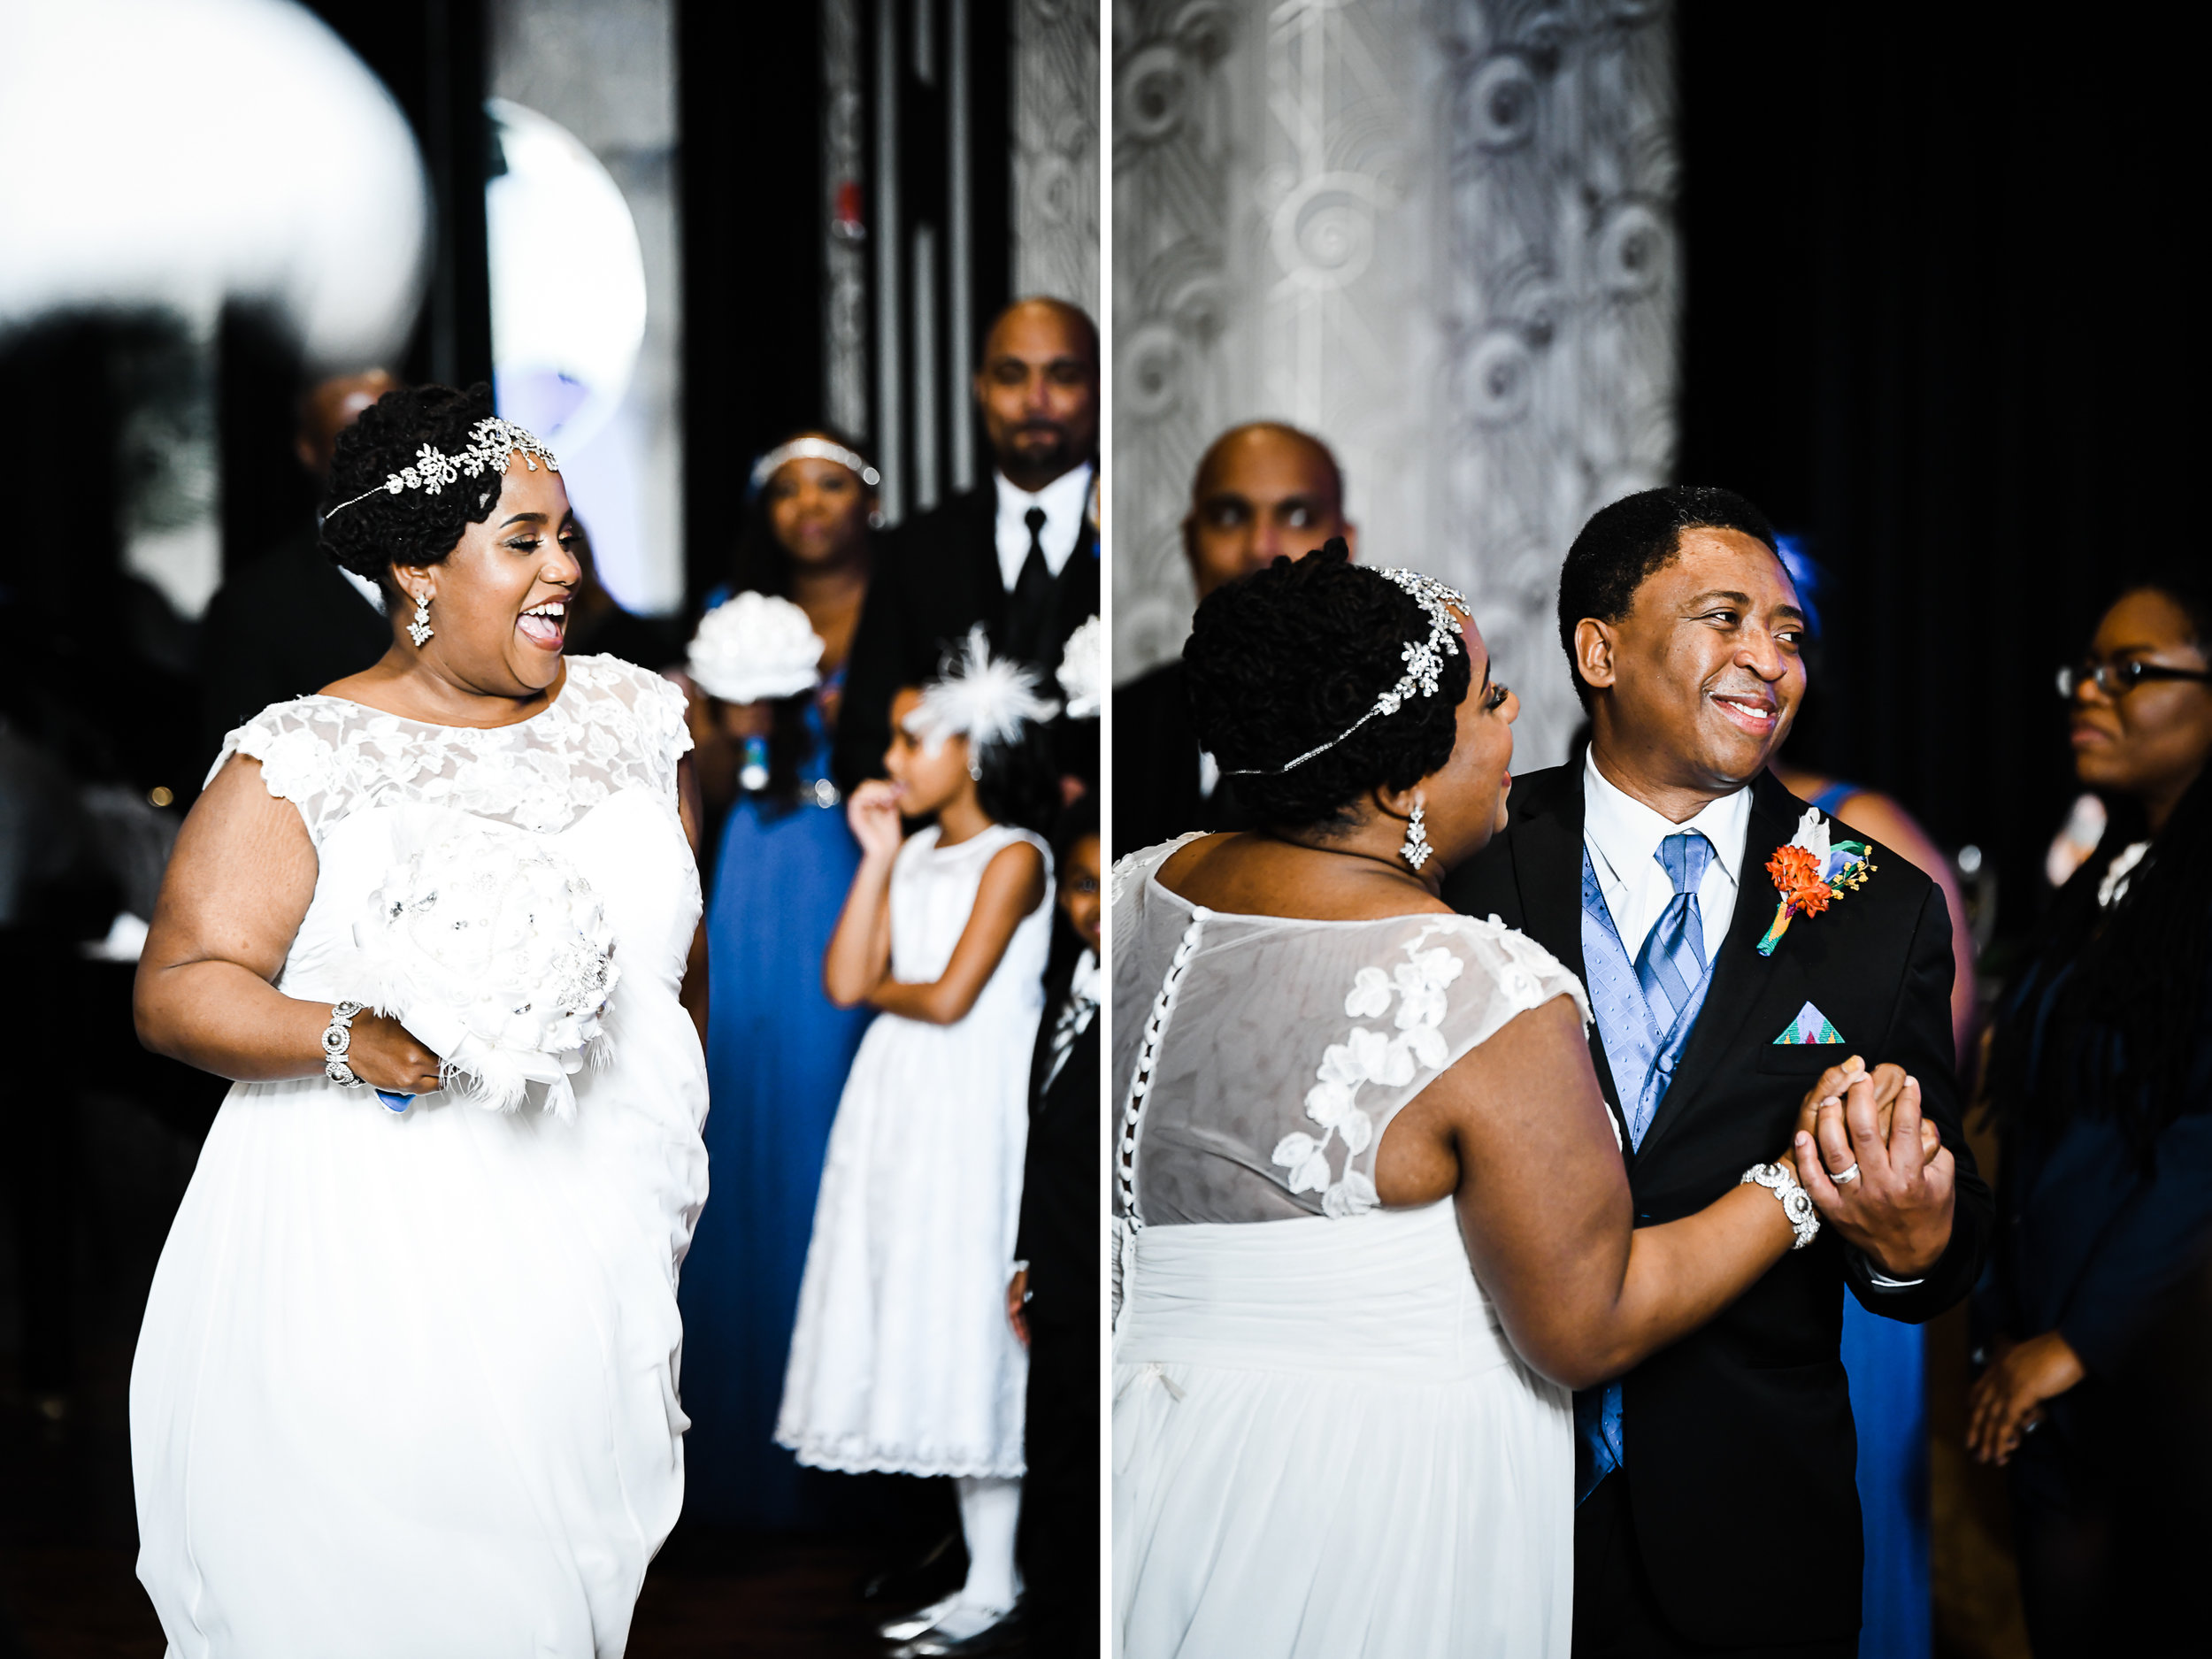 Carlyle Club VA wedding photography